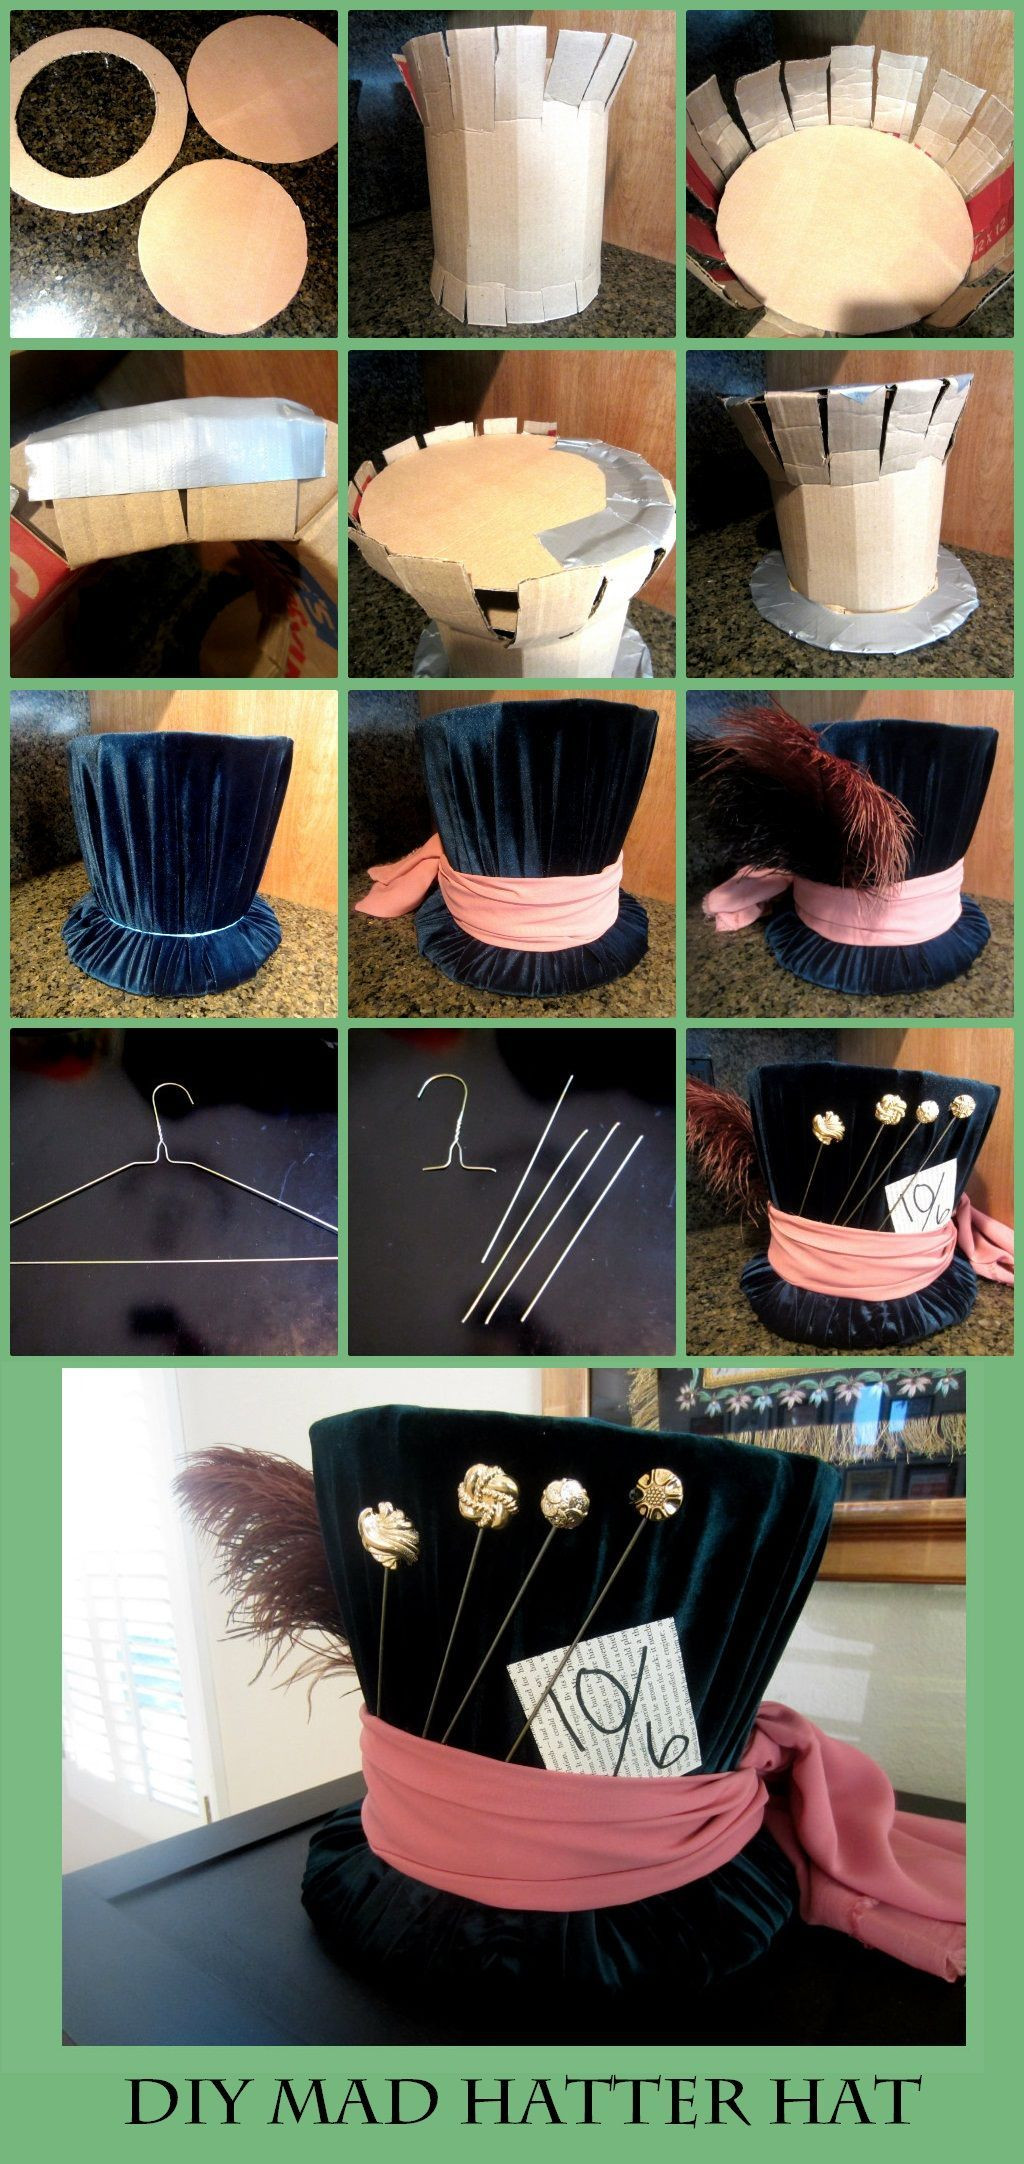 Best ideas about DIY Mad Hatter Hat . Save or Pin DIY Mad Hatter Top Hat Now.